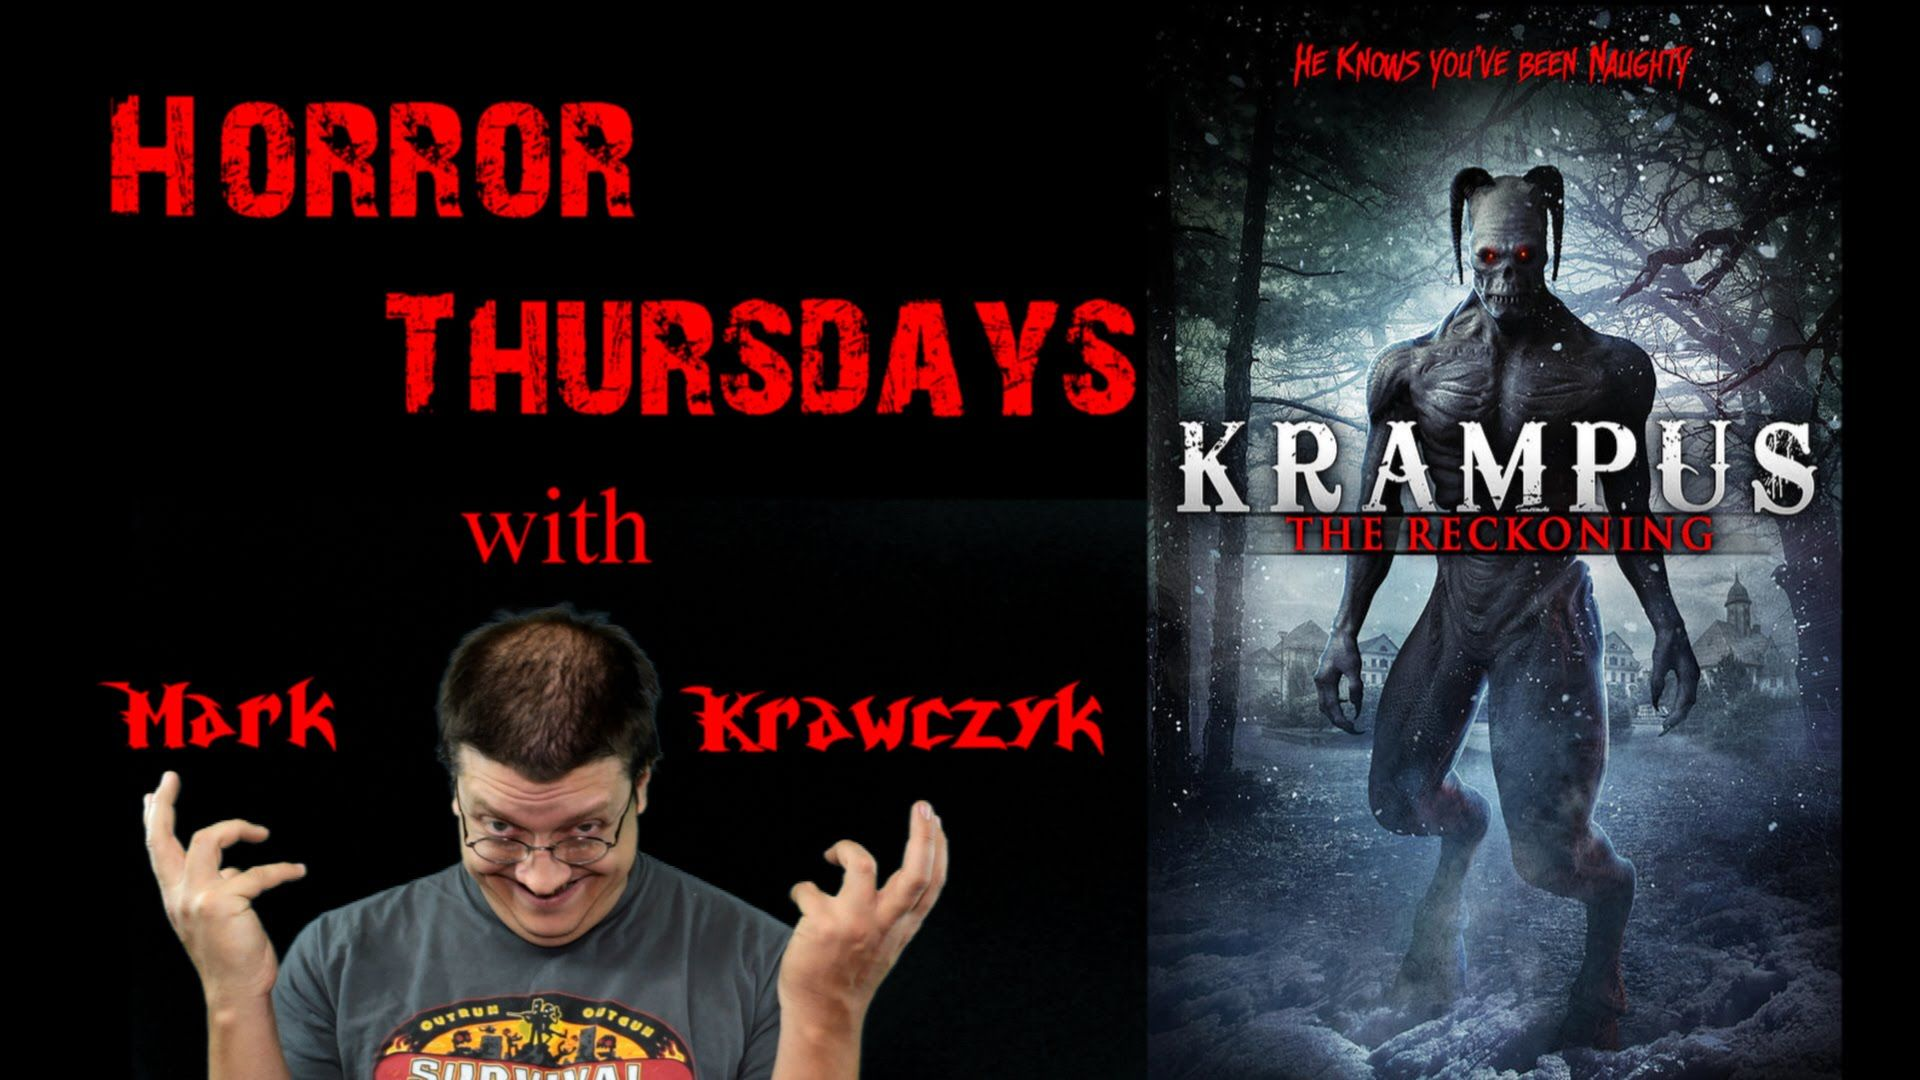 Krampus The Reckoning Movie Review on Horror Thursdays